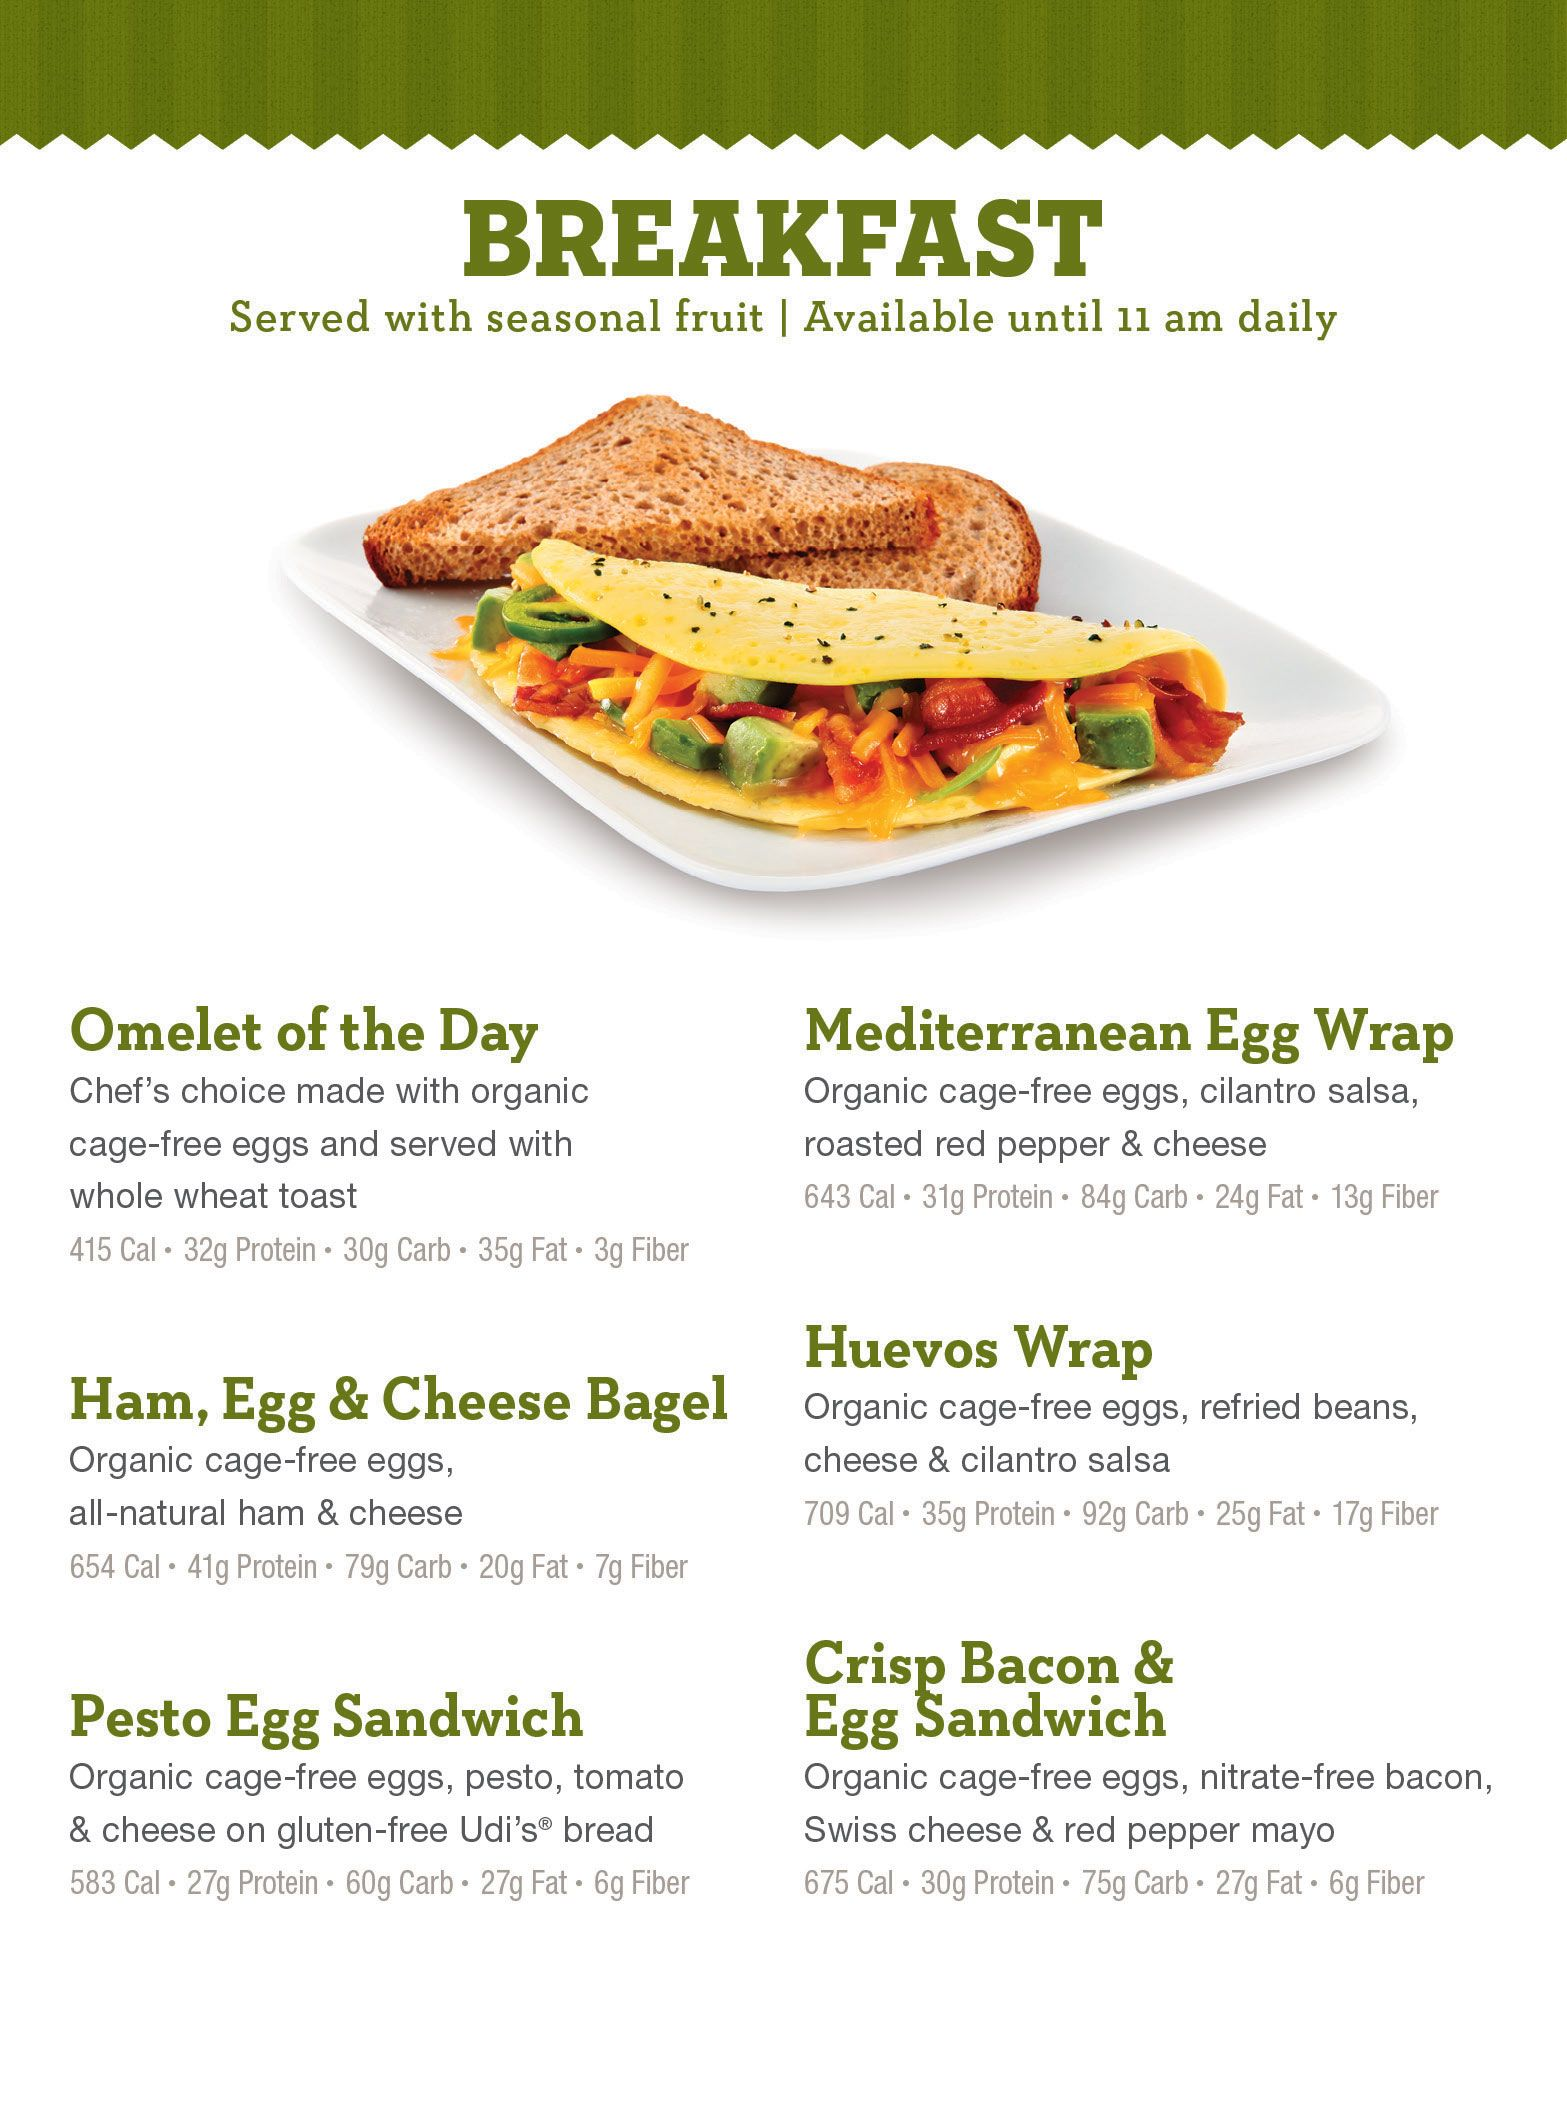 life cafe menu - meals, snacks for your healthy diet at life time